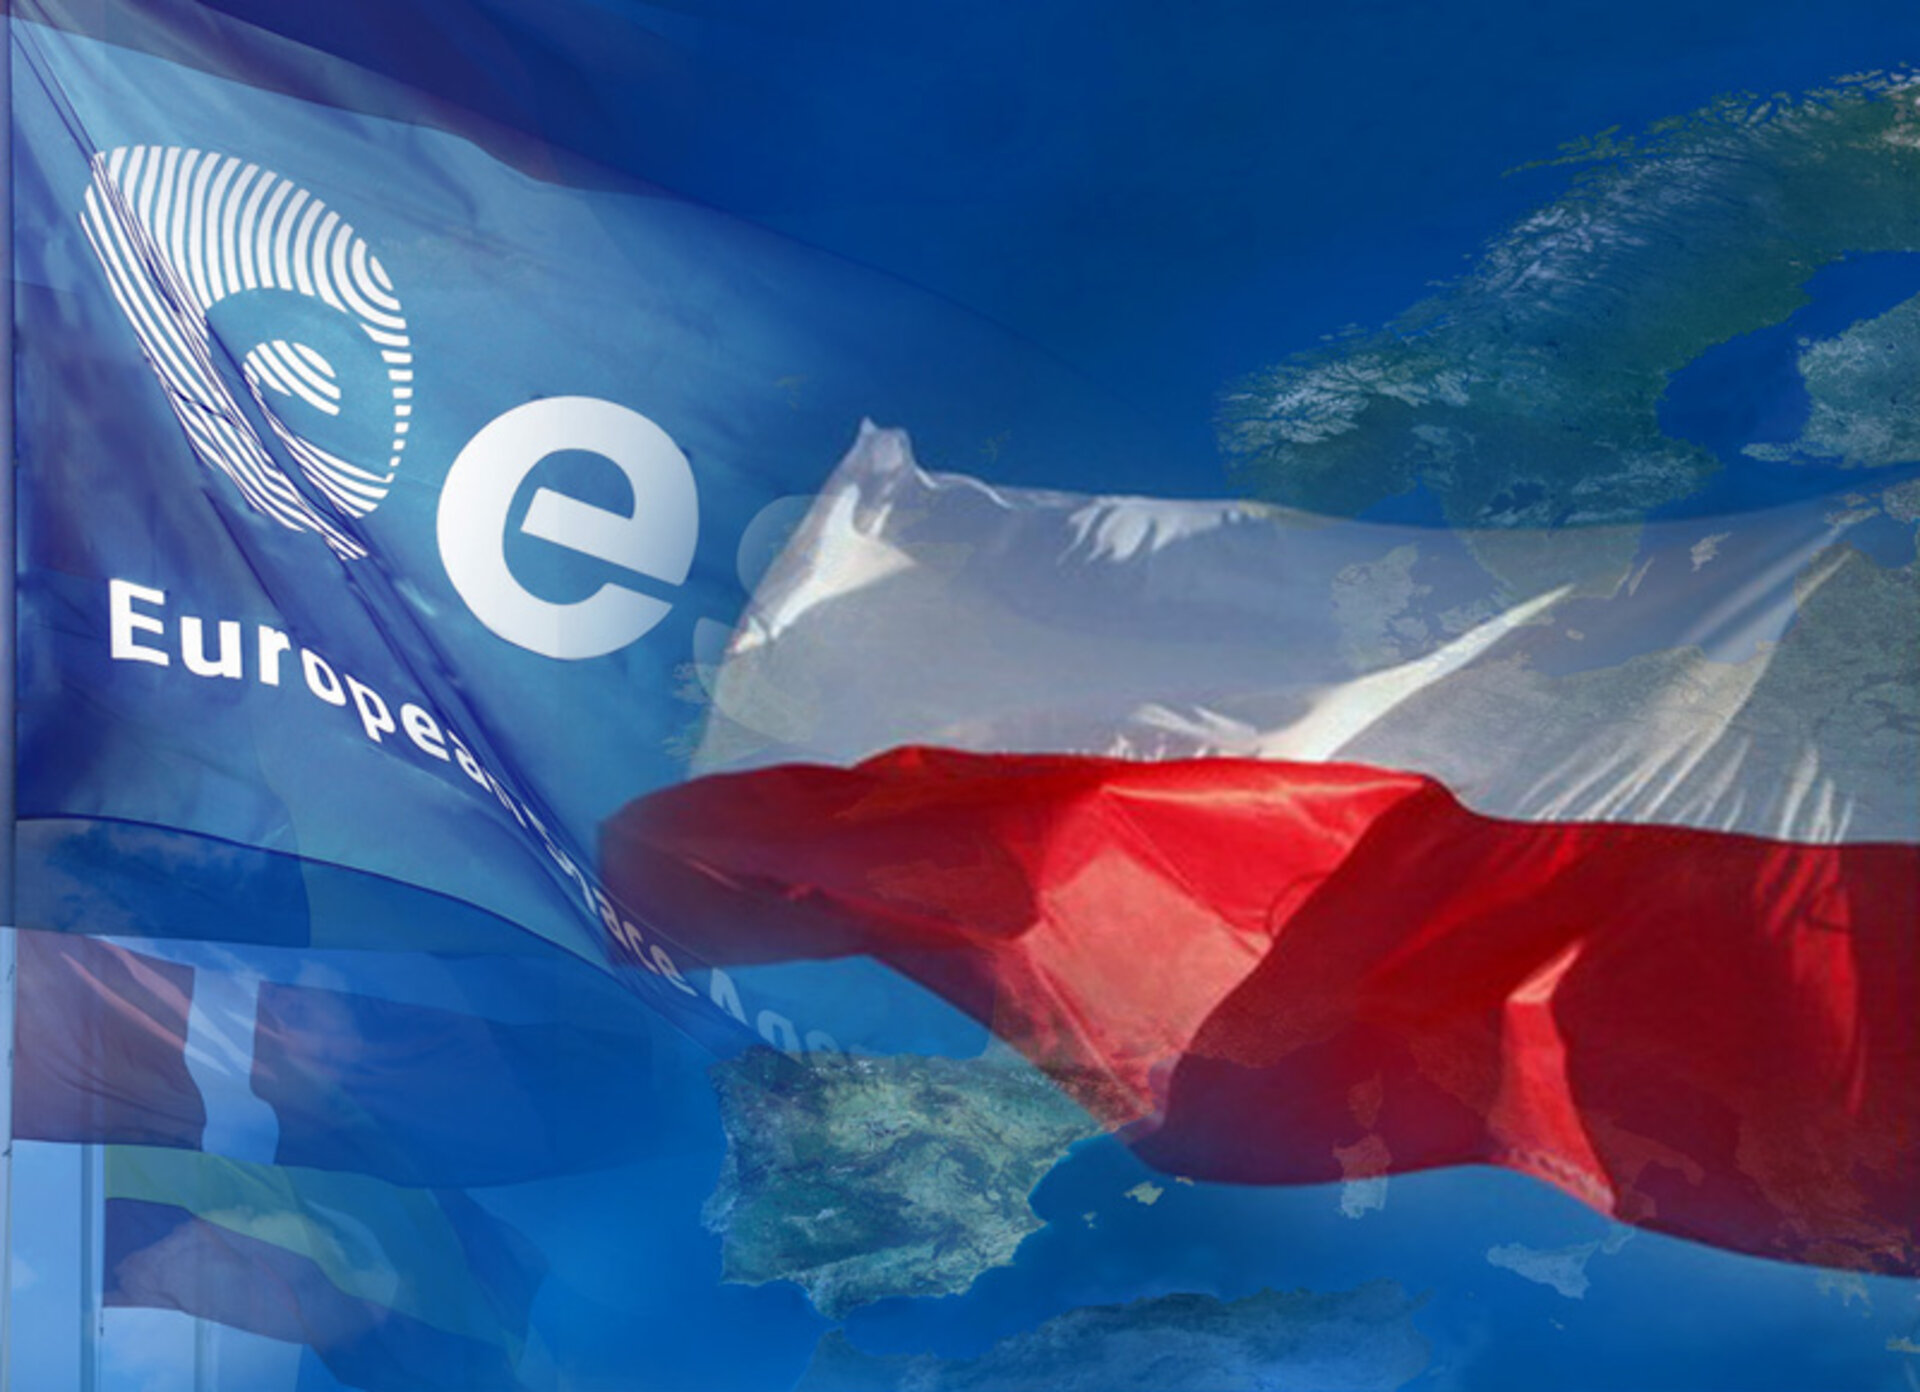 Poland formally became ESA's 20th Member State on 19 November 2012